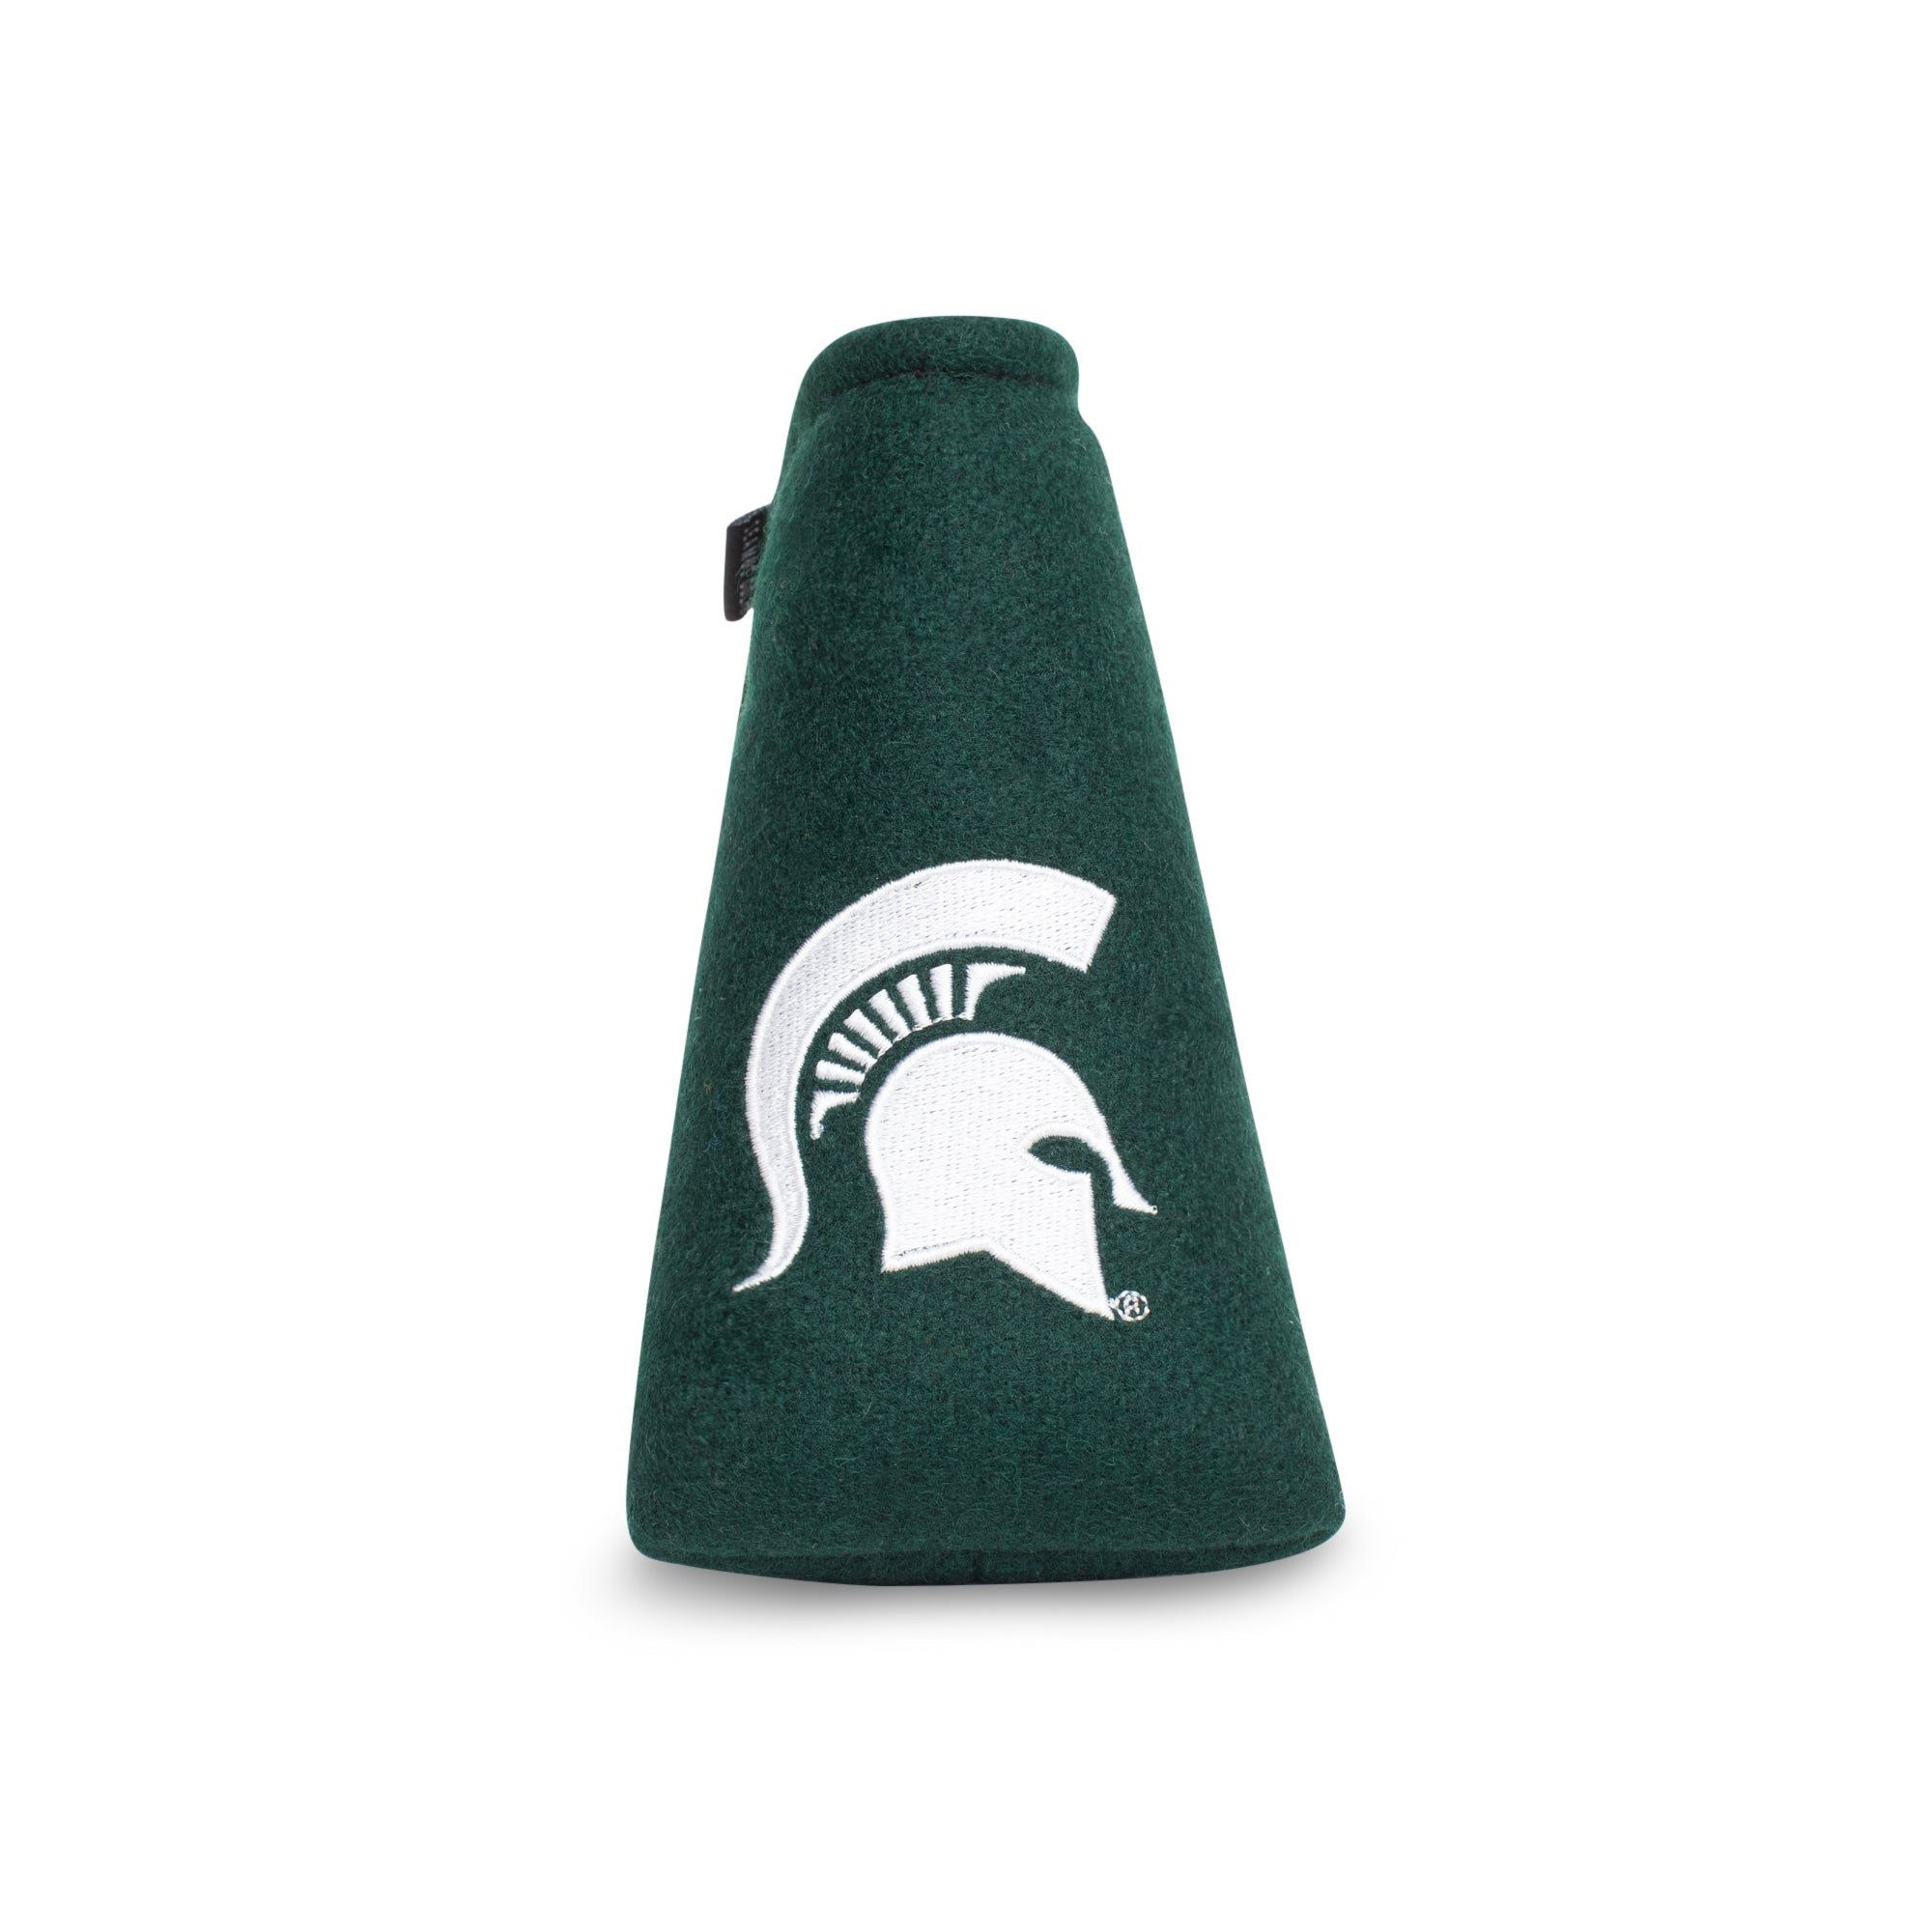 michigan state university spartan putter cover golf head cover